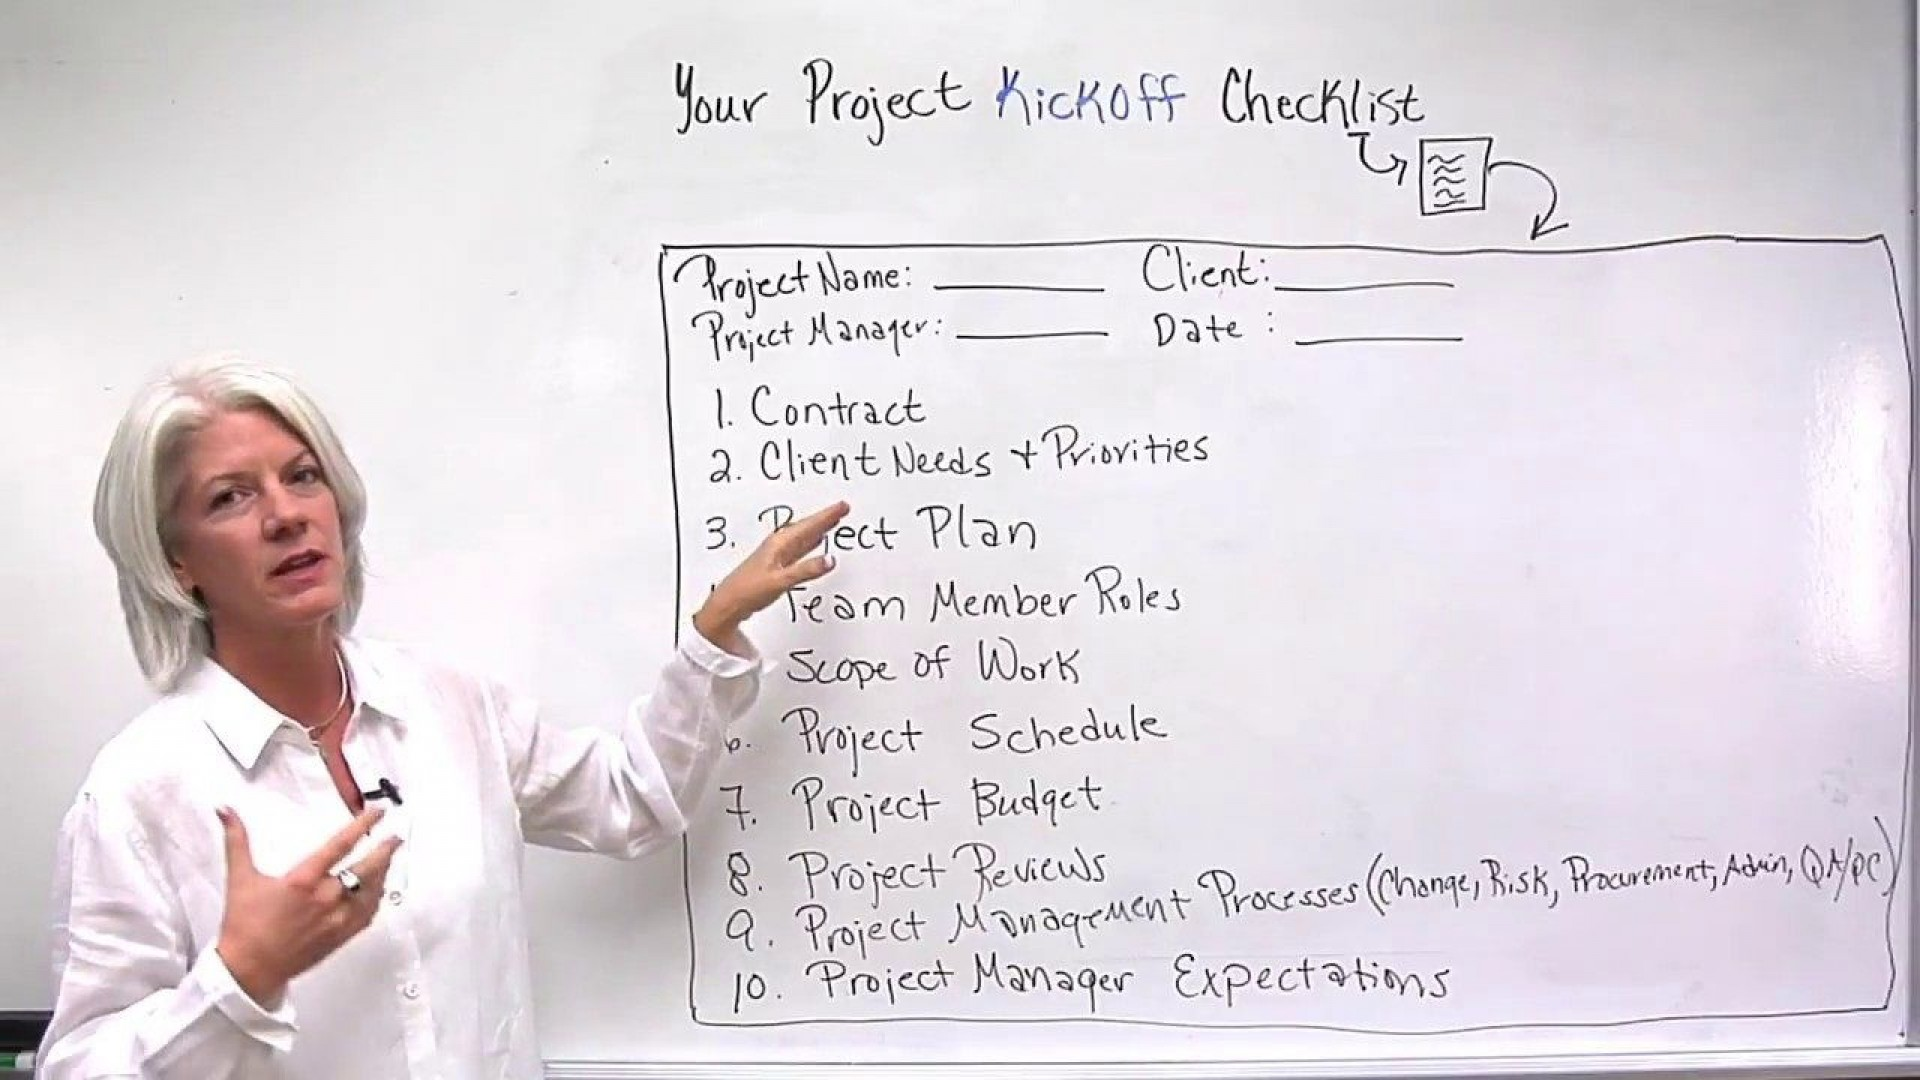 005 Fantastic Project Kickoff Meeting Template Excel High Resolution 1920